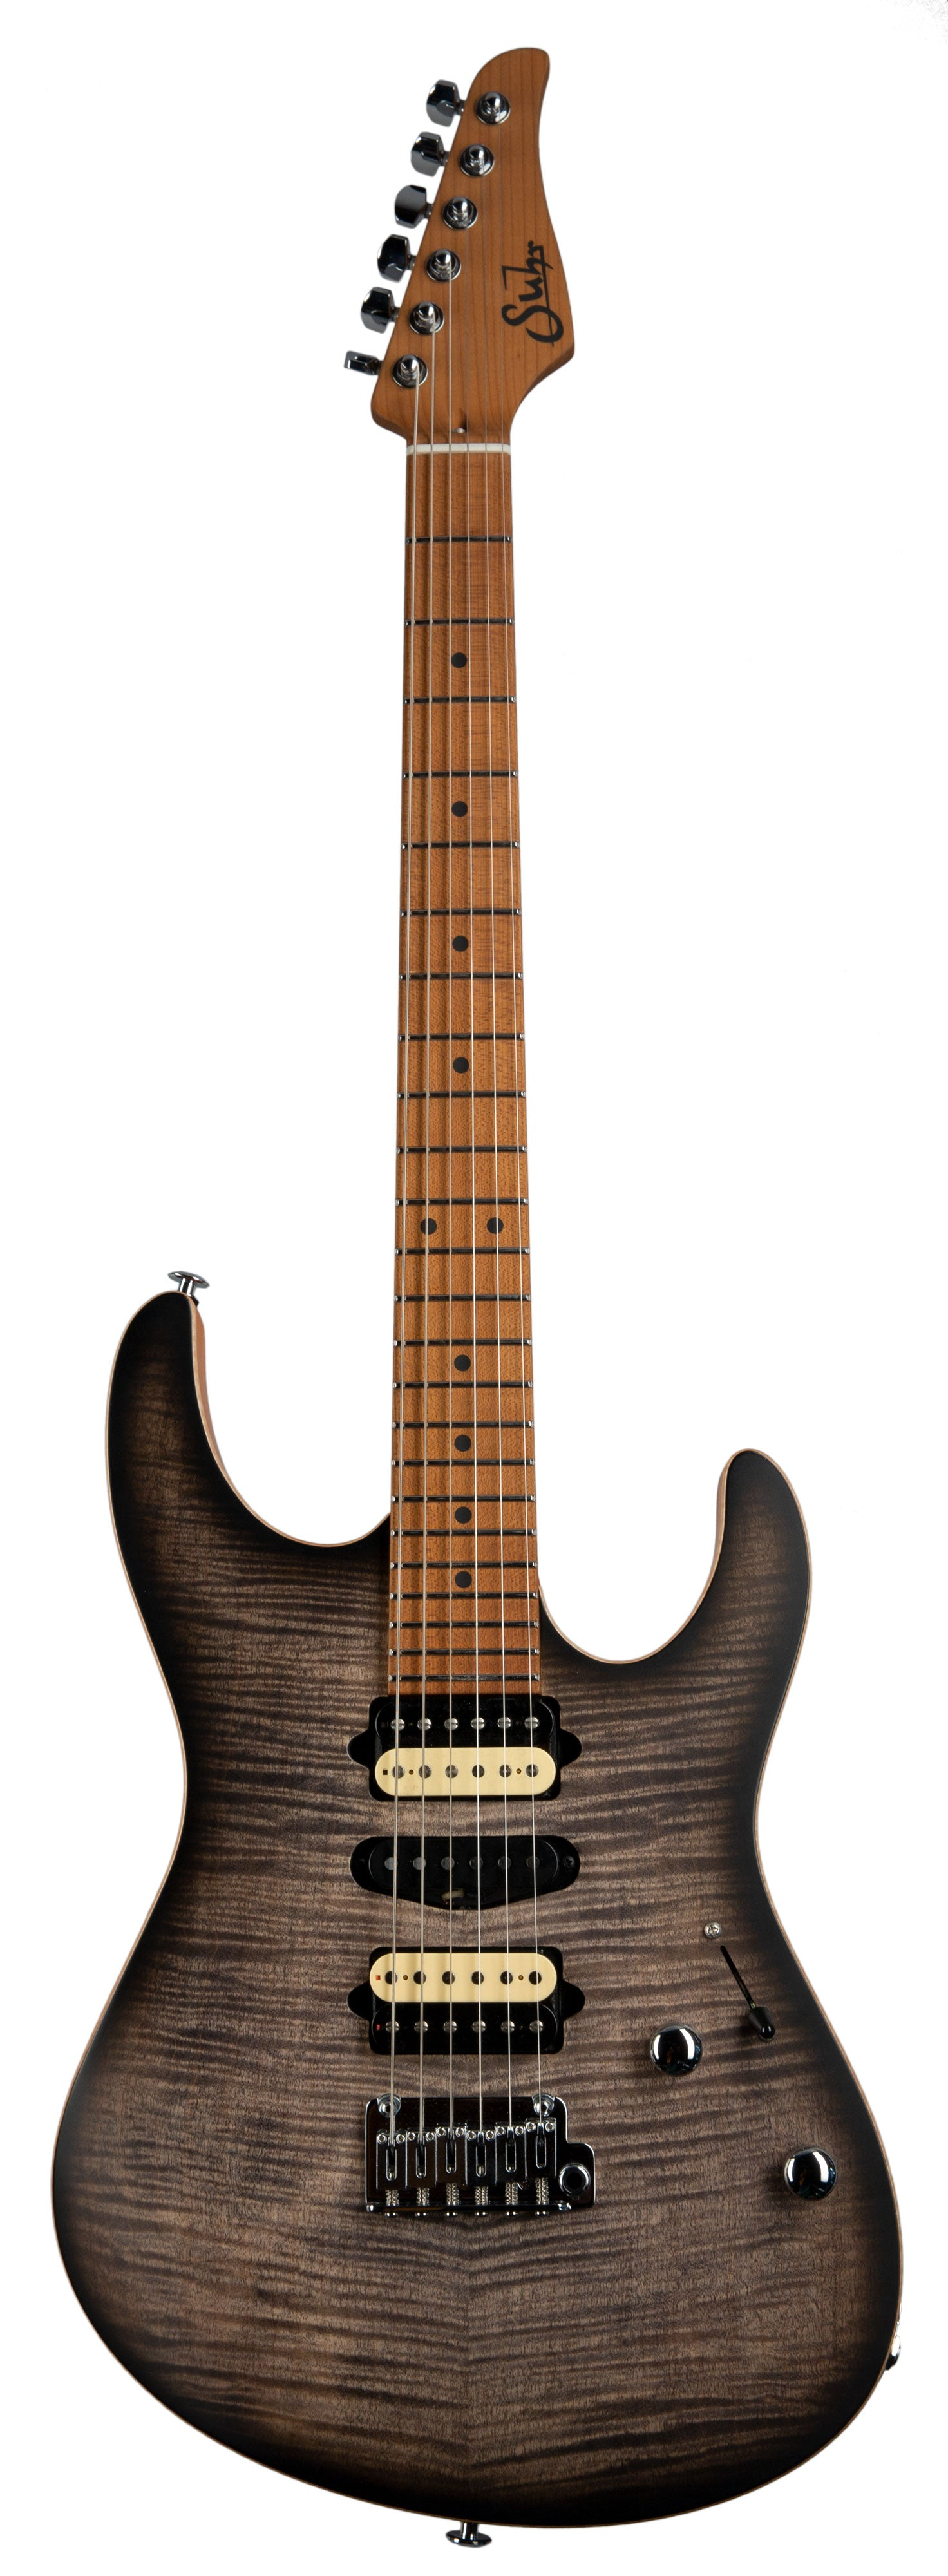 SUHR MODERN SATIN FLAME Satin Trans Charcoal Burst